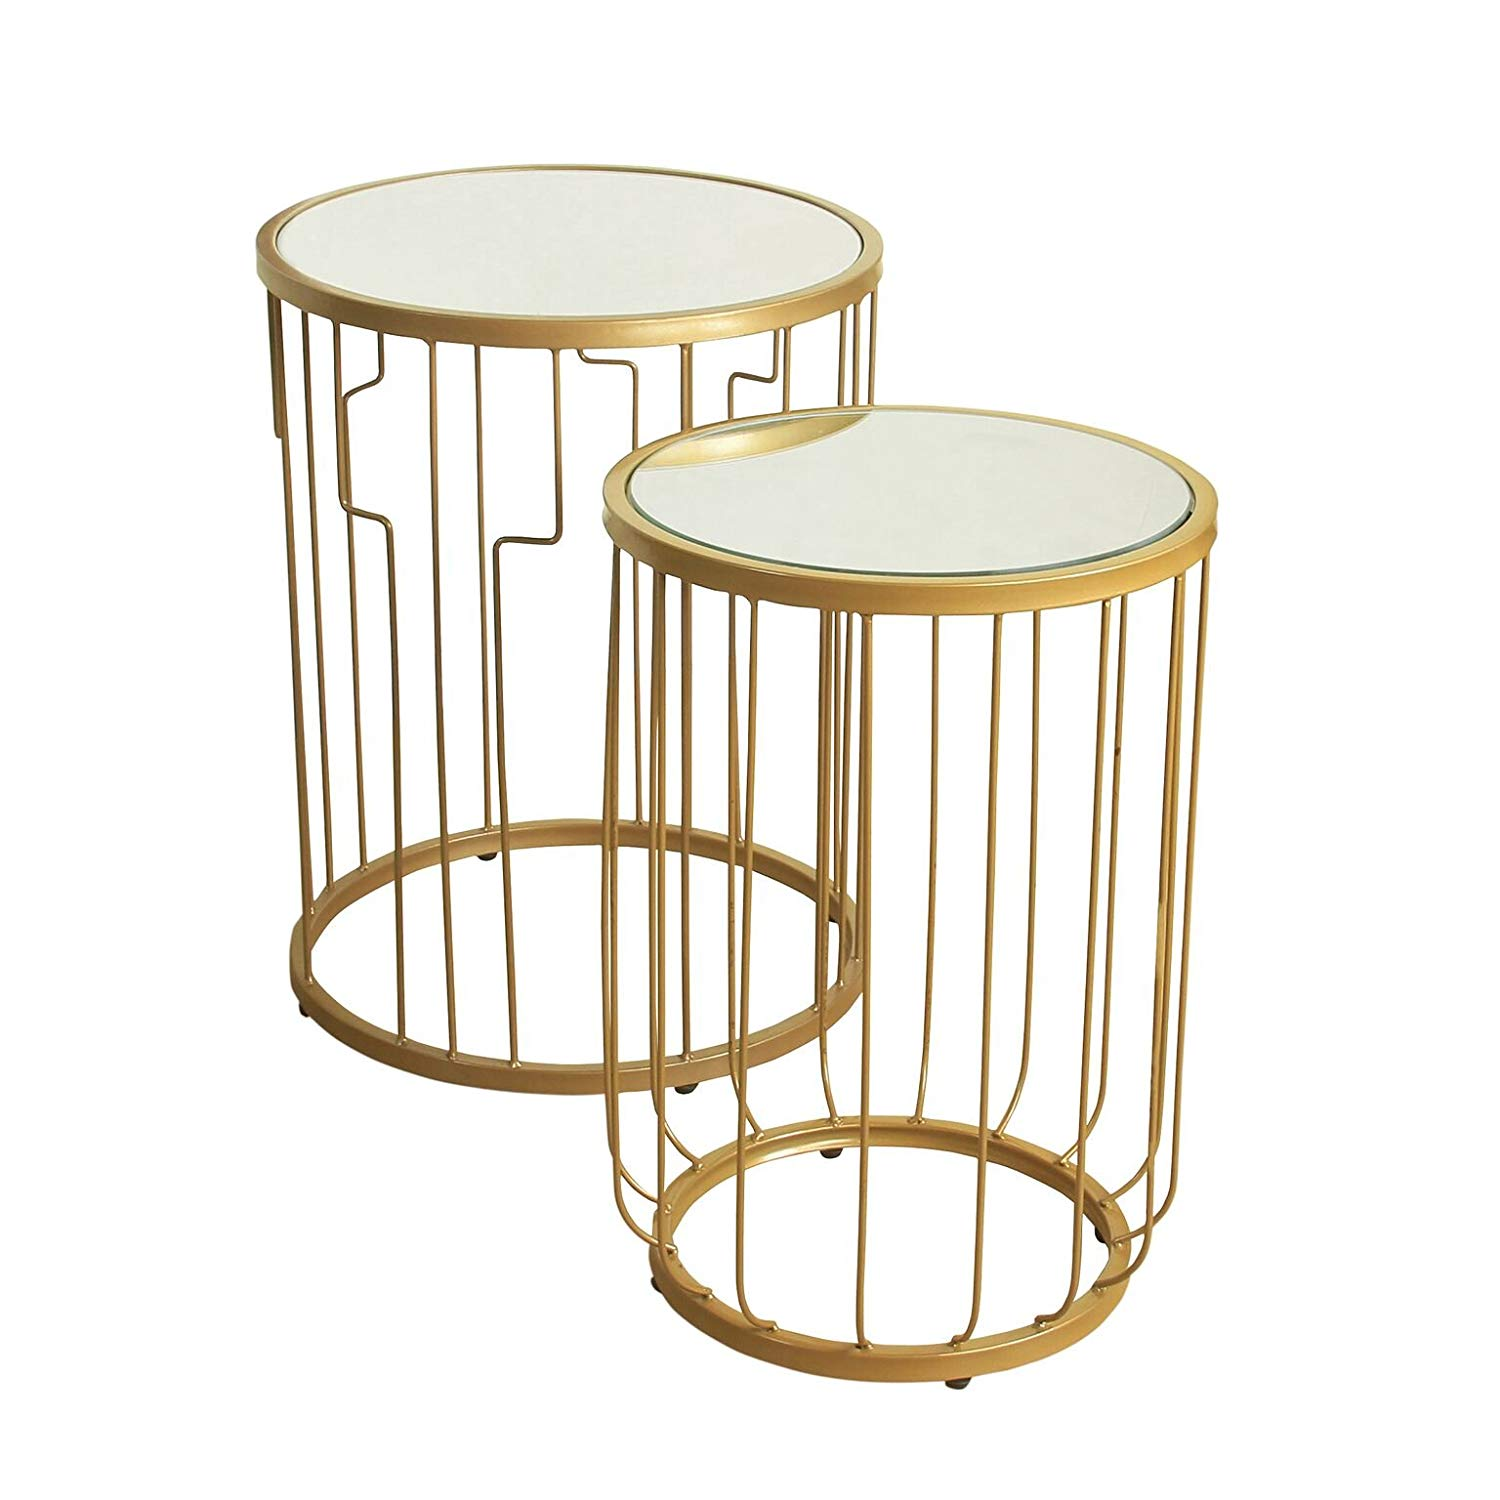 homepop metal accent nesting tables with glass table top set gold kitchen dining side wheels small couch end safavieh home collection brogen west elm brass lamp round patio cover